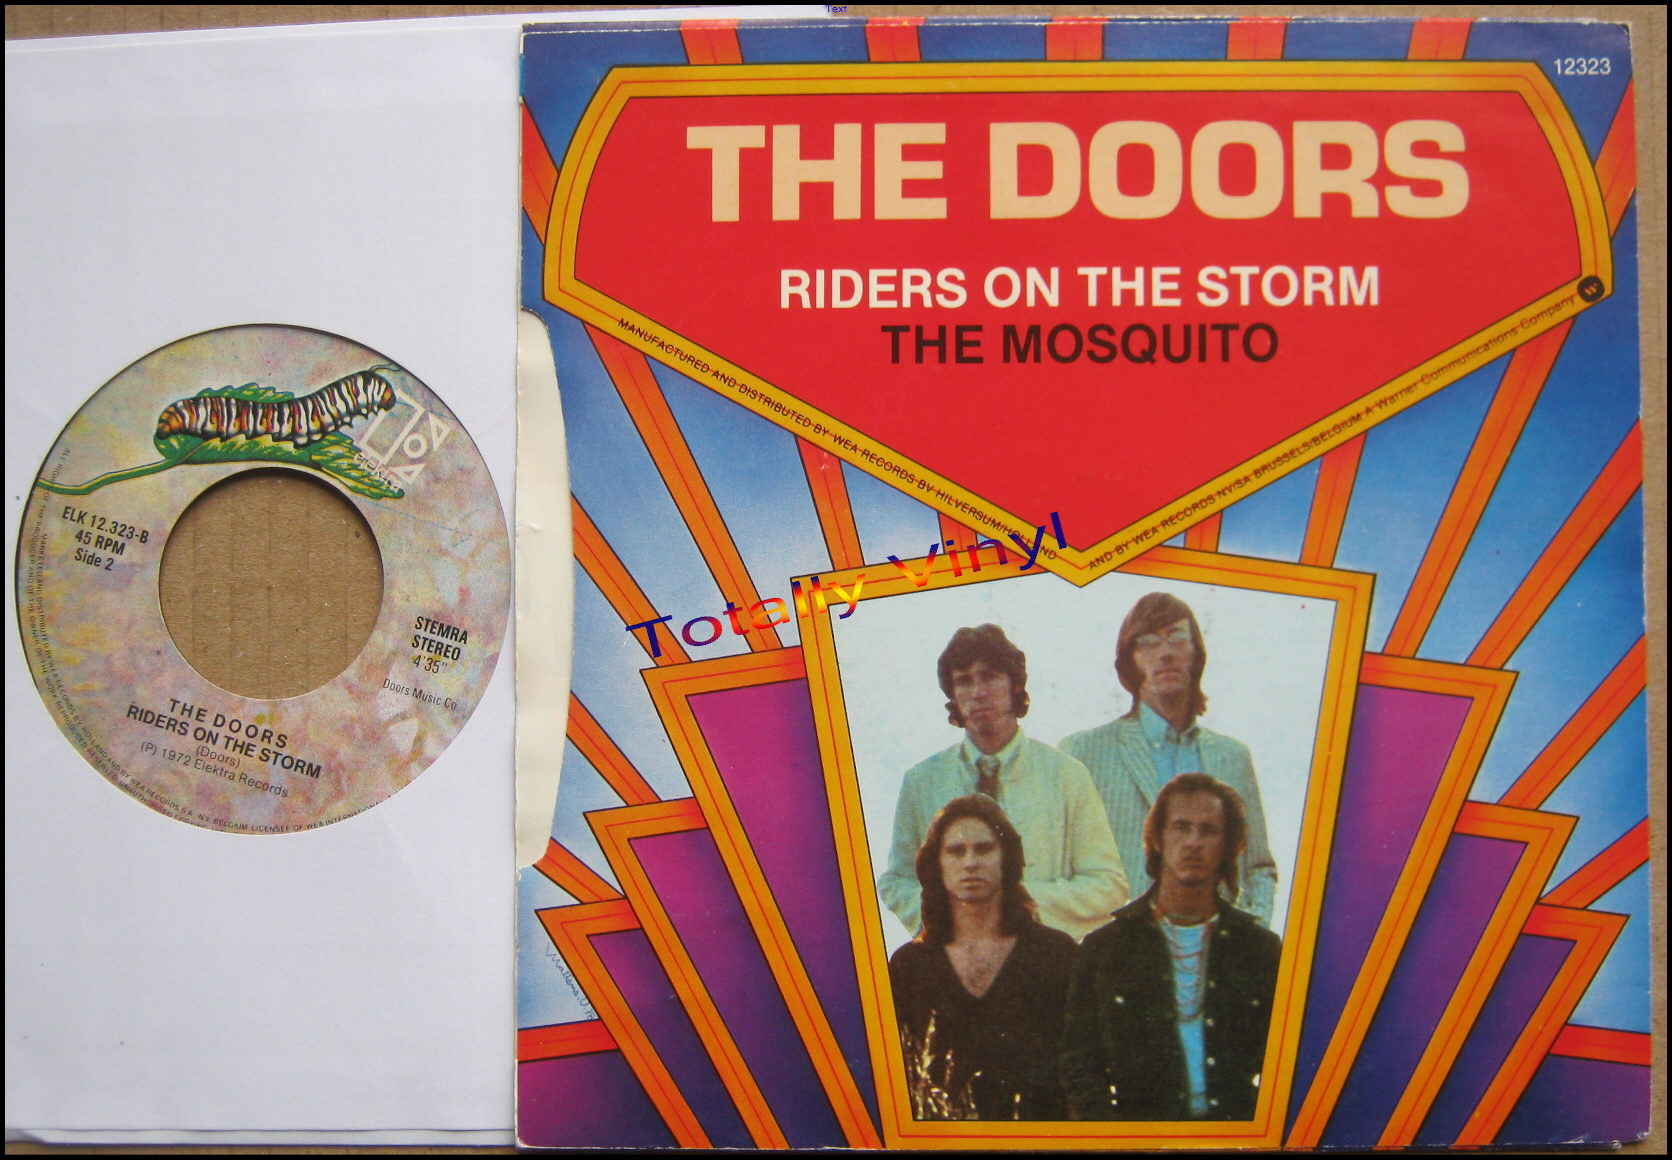 Totally Vinyl Records Doors The The Mosquitoriders On The